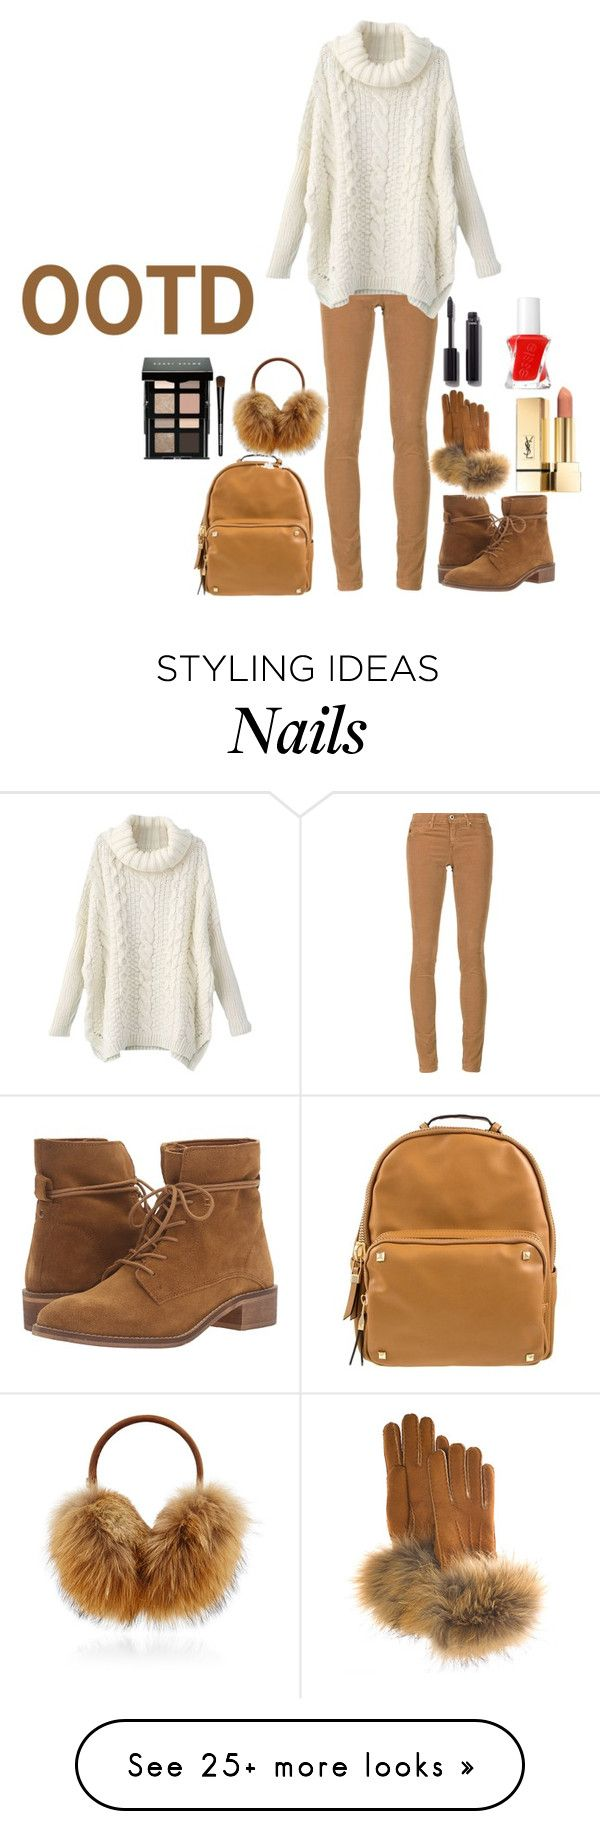 """""""OOTD"""" by ausra-veronika on Polyvore featuring AG Adriano Goldschmied, Steve Madden, Bogner, FRR, Bobbi Brown Cosmetics, Chanel and Essie"""